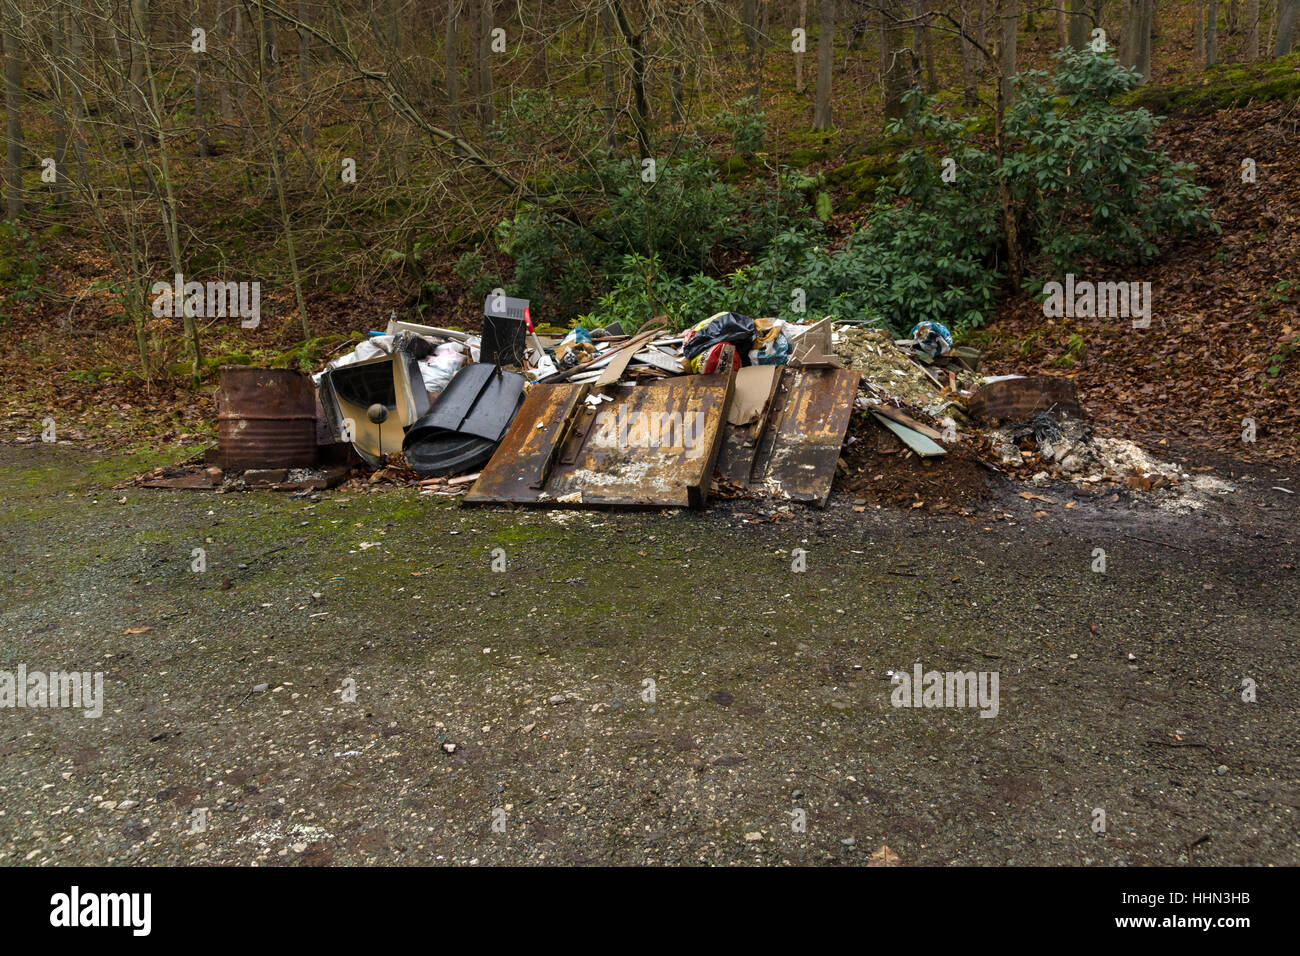 Dumped rubbish and garbage in a forest an example of fly tipping or illegal dumping on a forest trail in North Wales - Stock Image